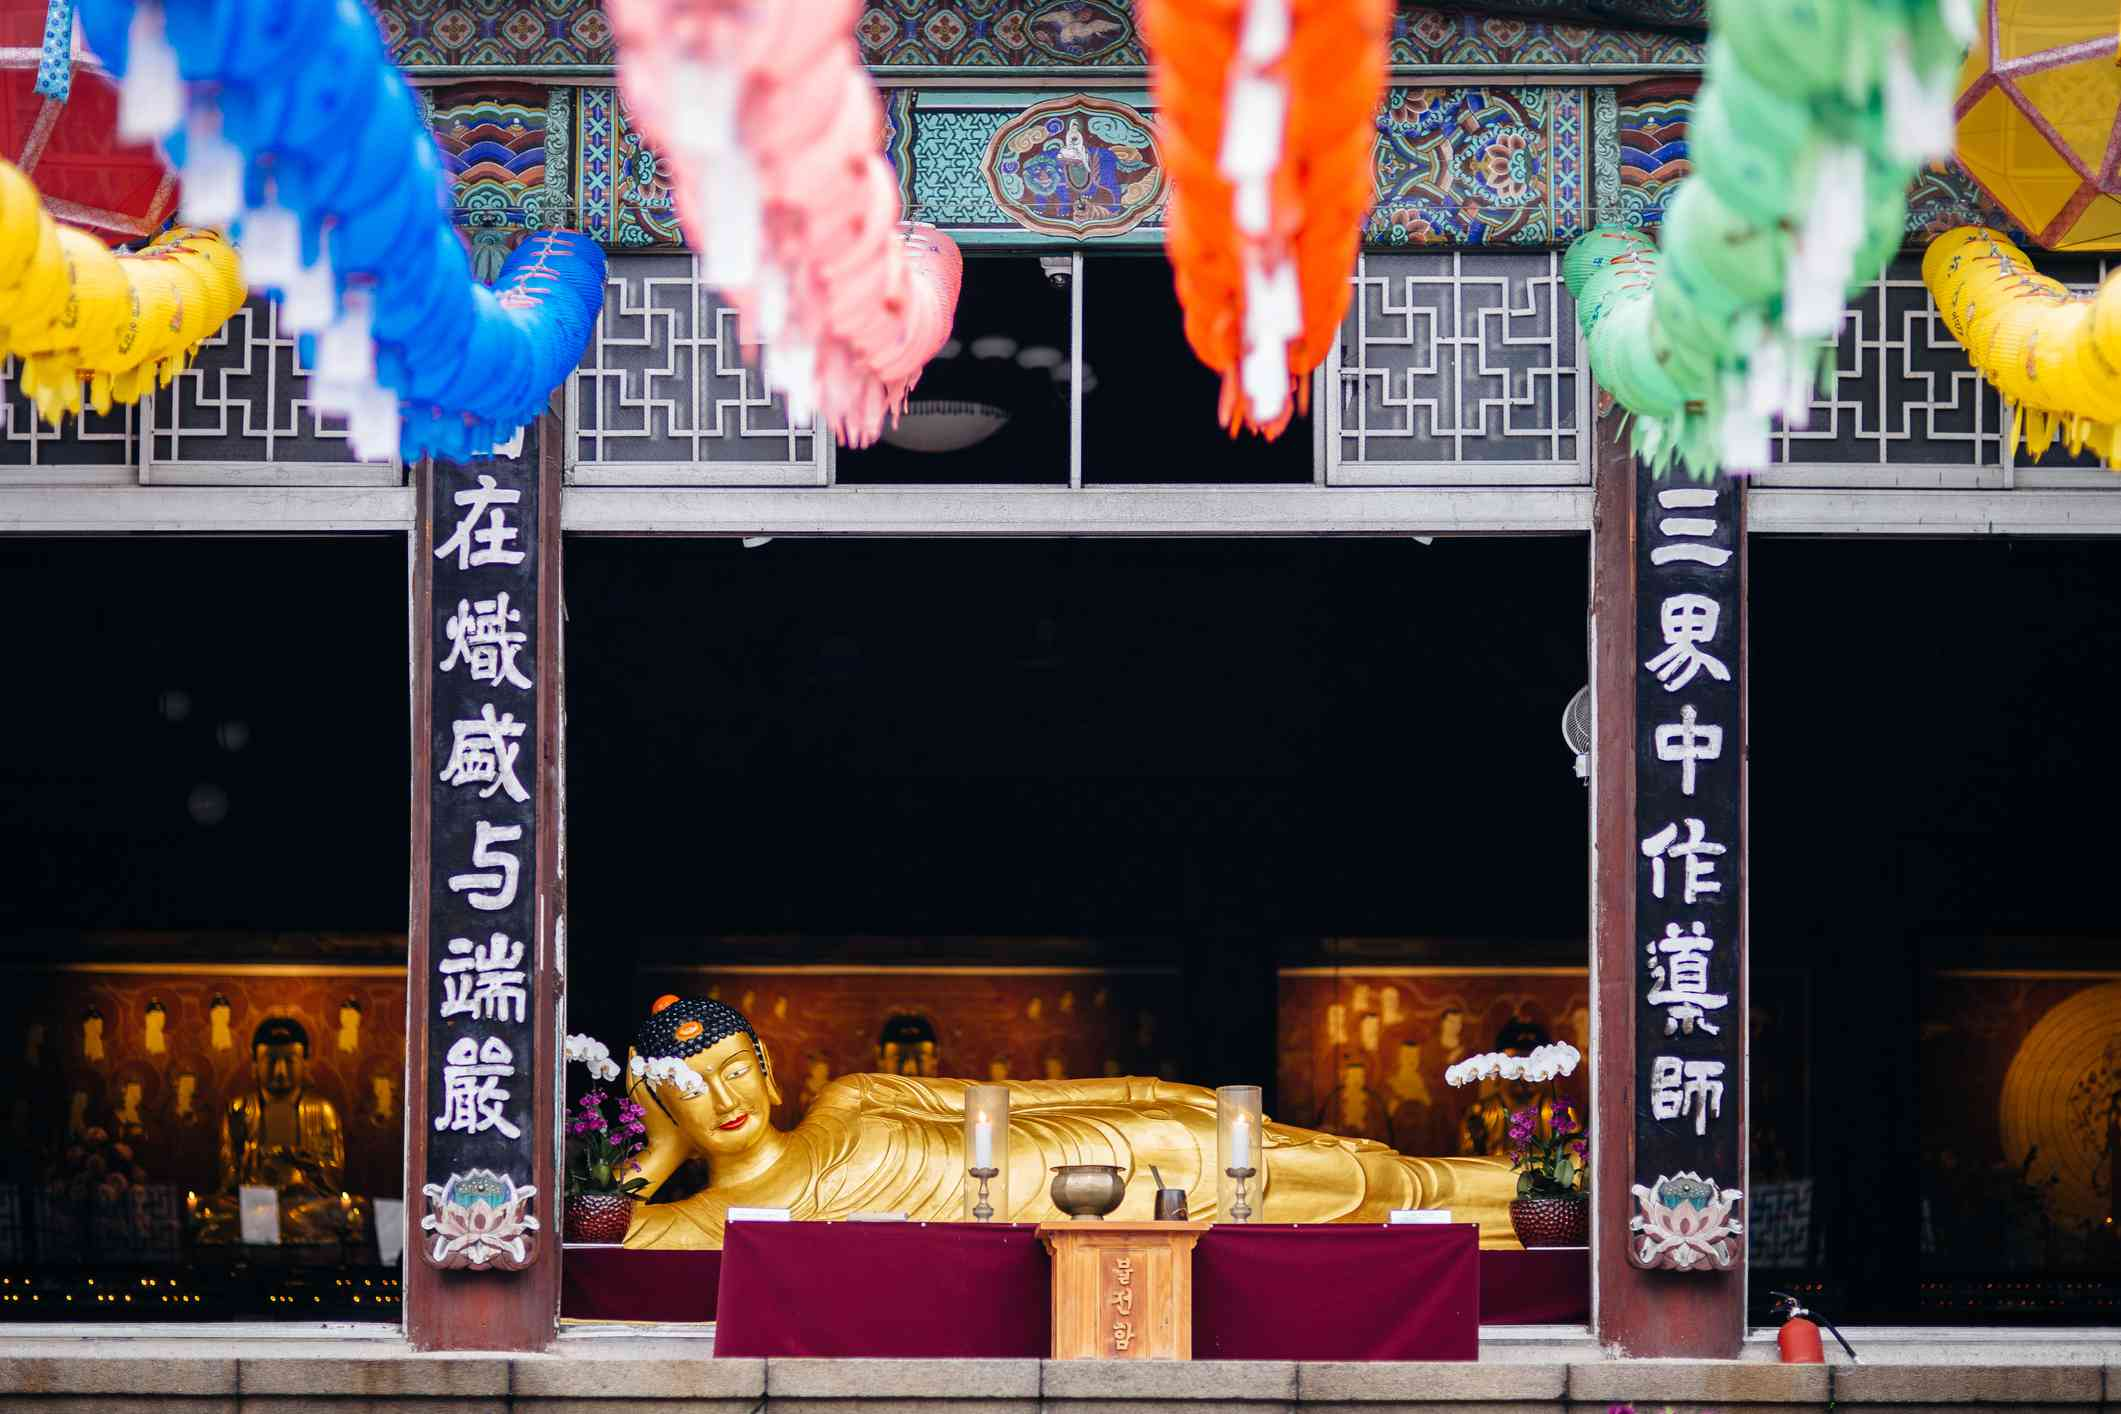 Photograph of golden reclining Buddha statue with colorful lanterns in the foreground